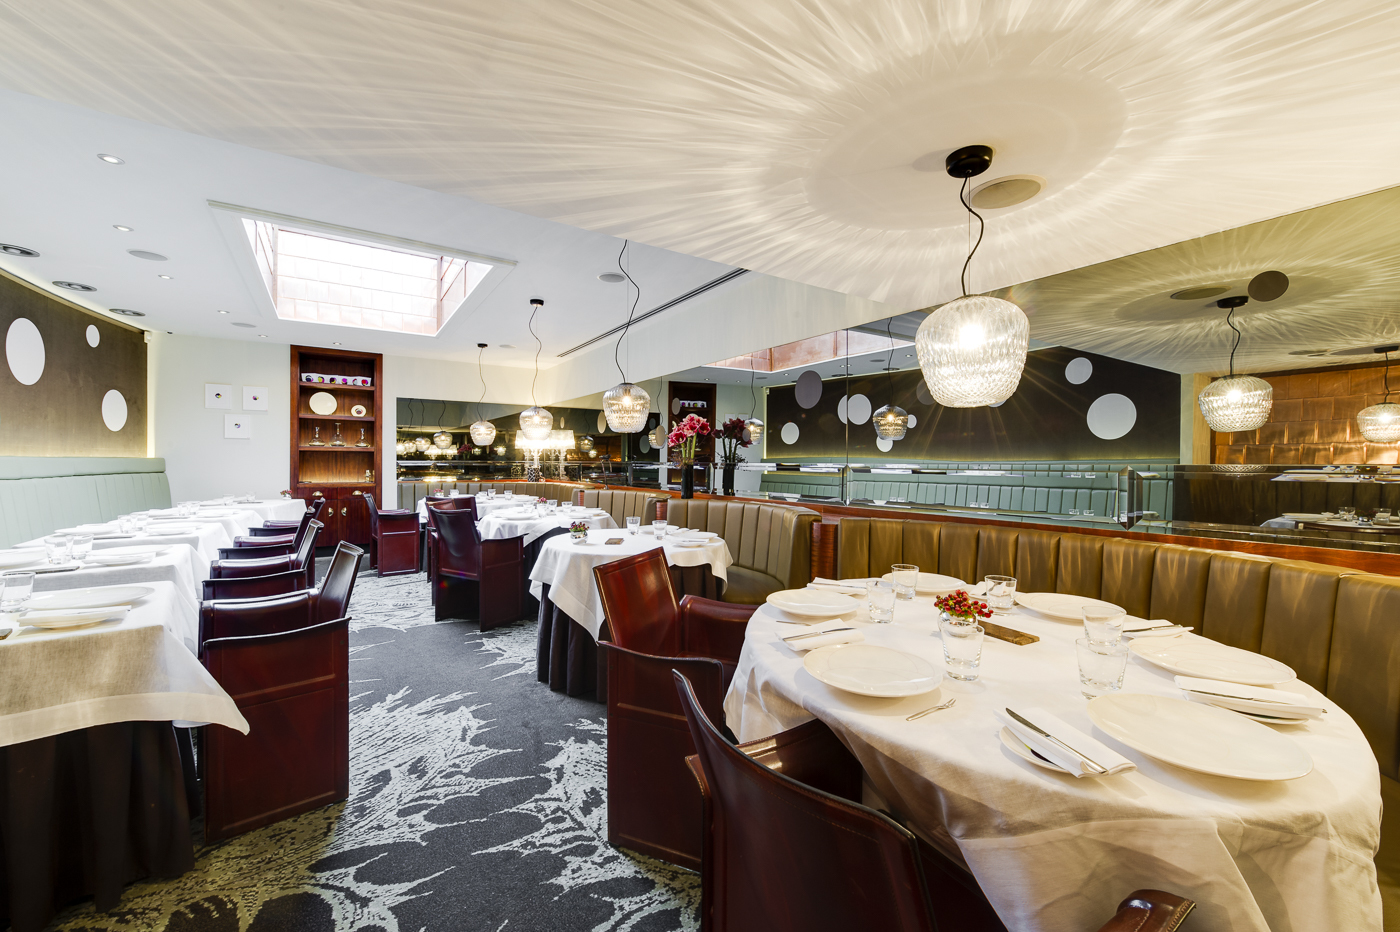 Michelin star restaurants London - Pied a terre